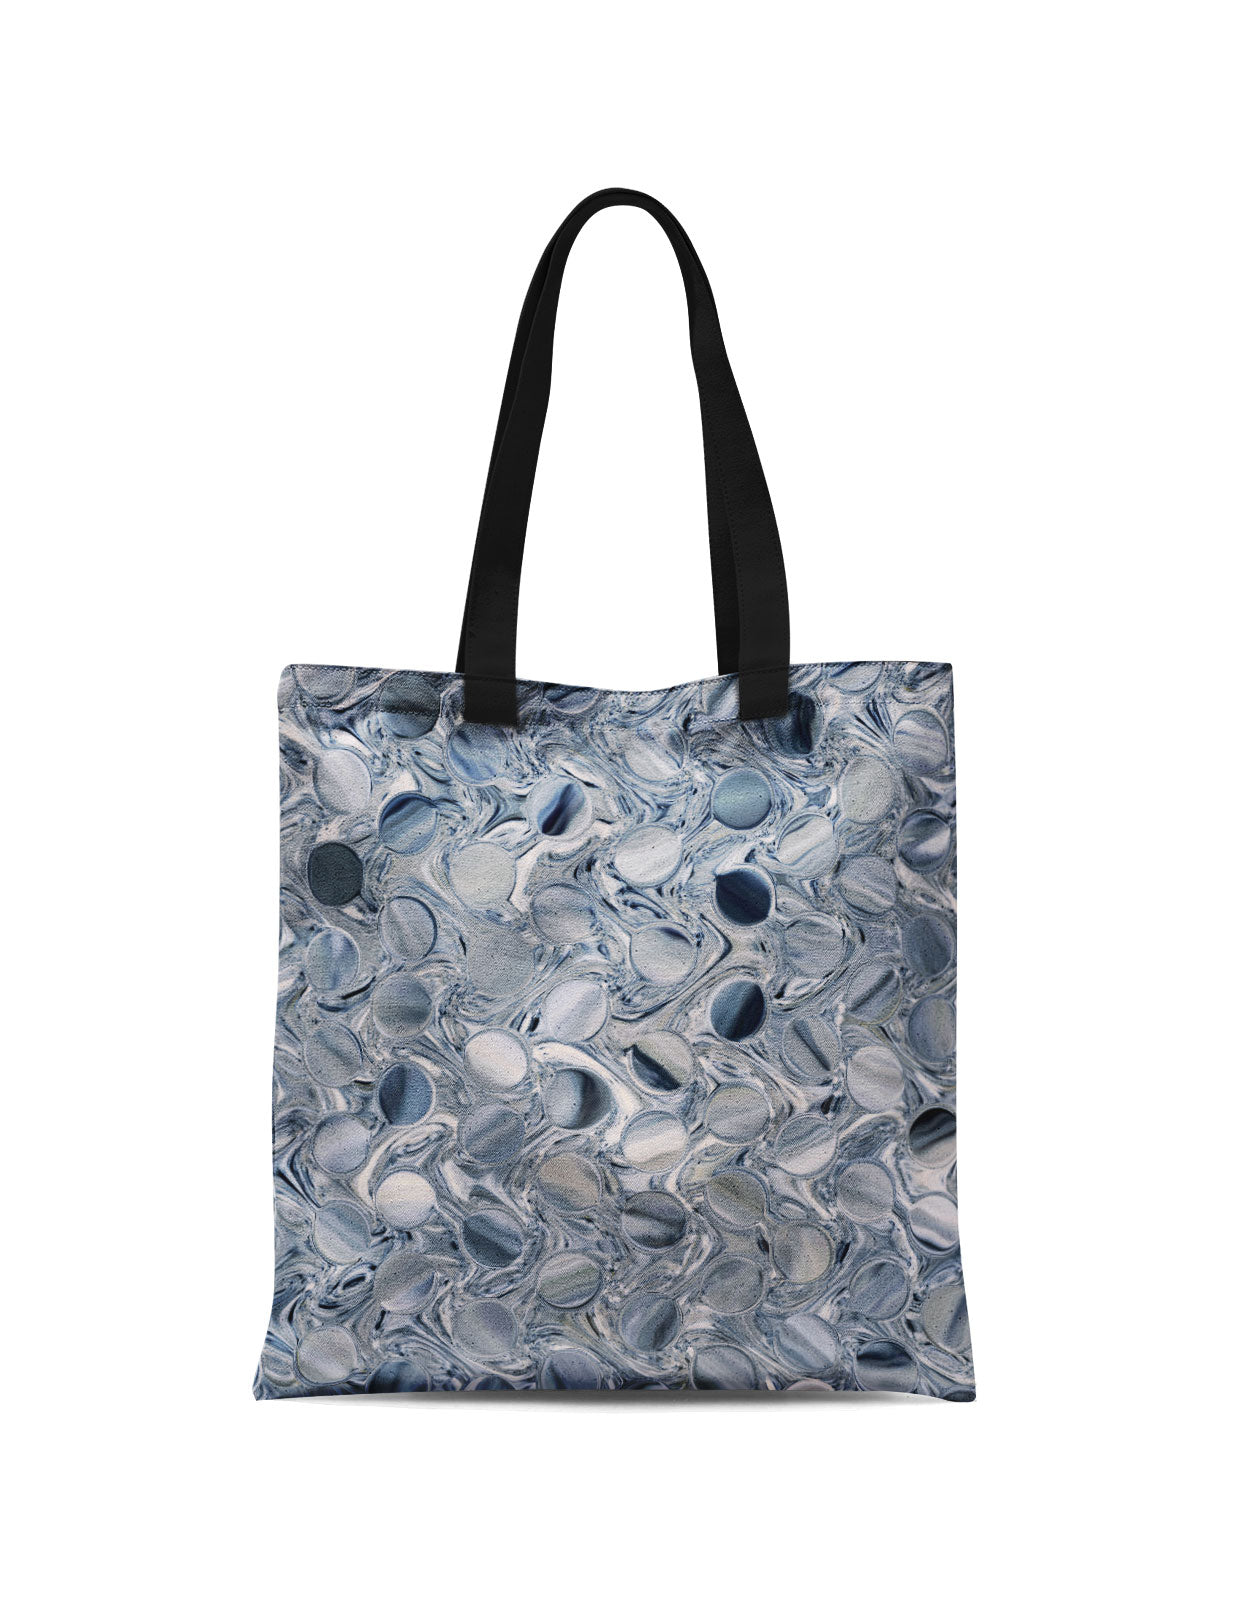 Abstra Silver Canvas Tote